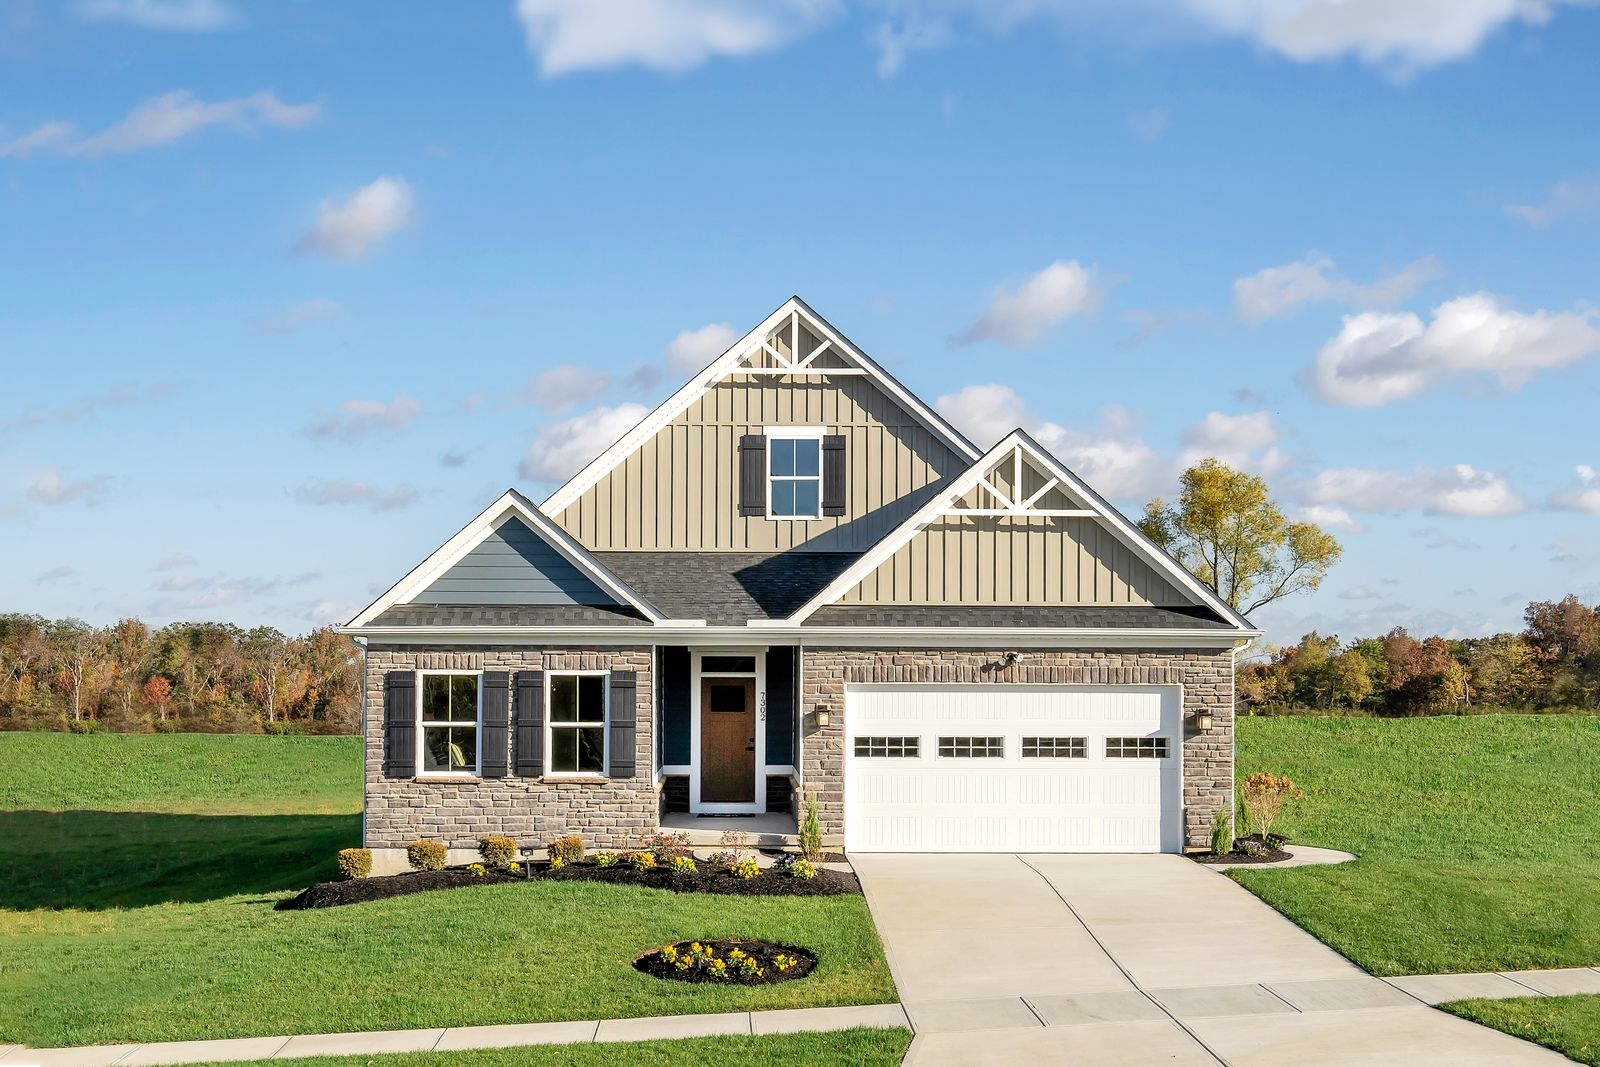 WELCOME HOME TO RAVINES AT HAZELWOOD:Modern convenience & rural atmosphere w/ low taxes-low $300's! Wooded, no-rear neighbor homesites with ext garage options! Near I-70, Rt. 161 & 310.Click Here to Schedule Your Visit Today!